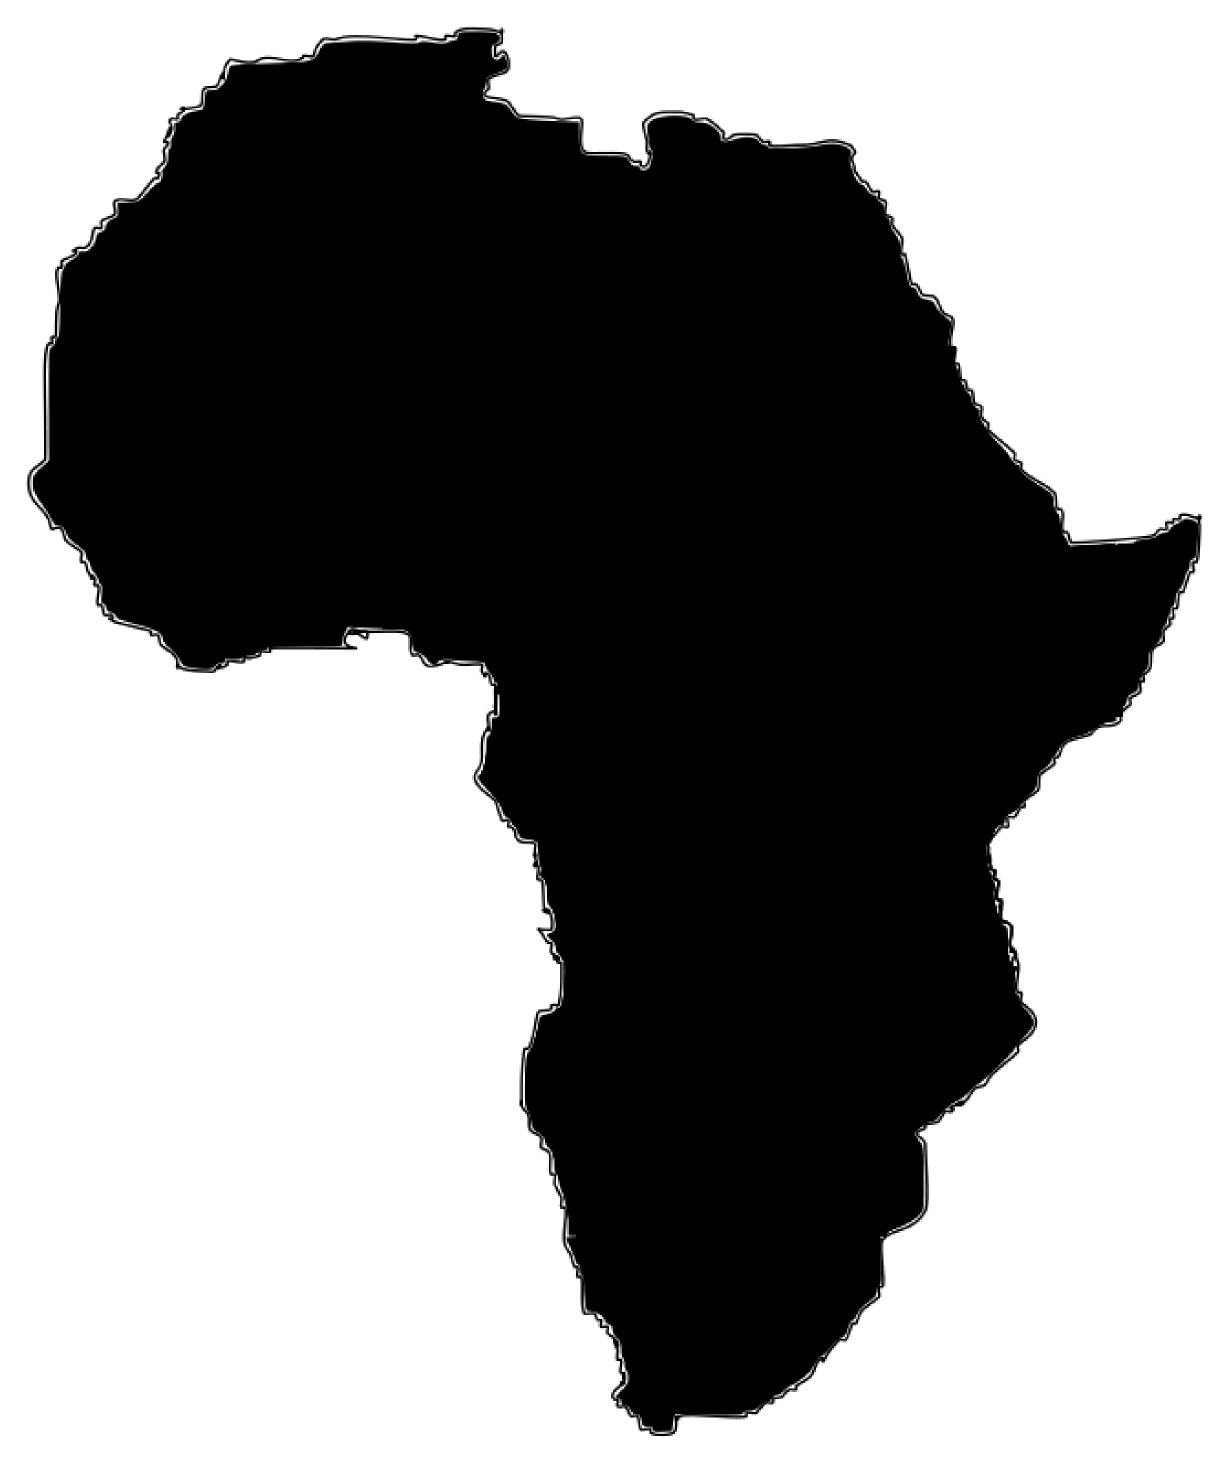 Africa Clipart - Clipart Kid